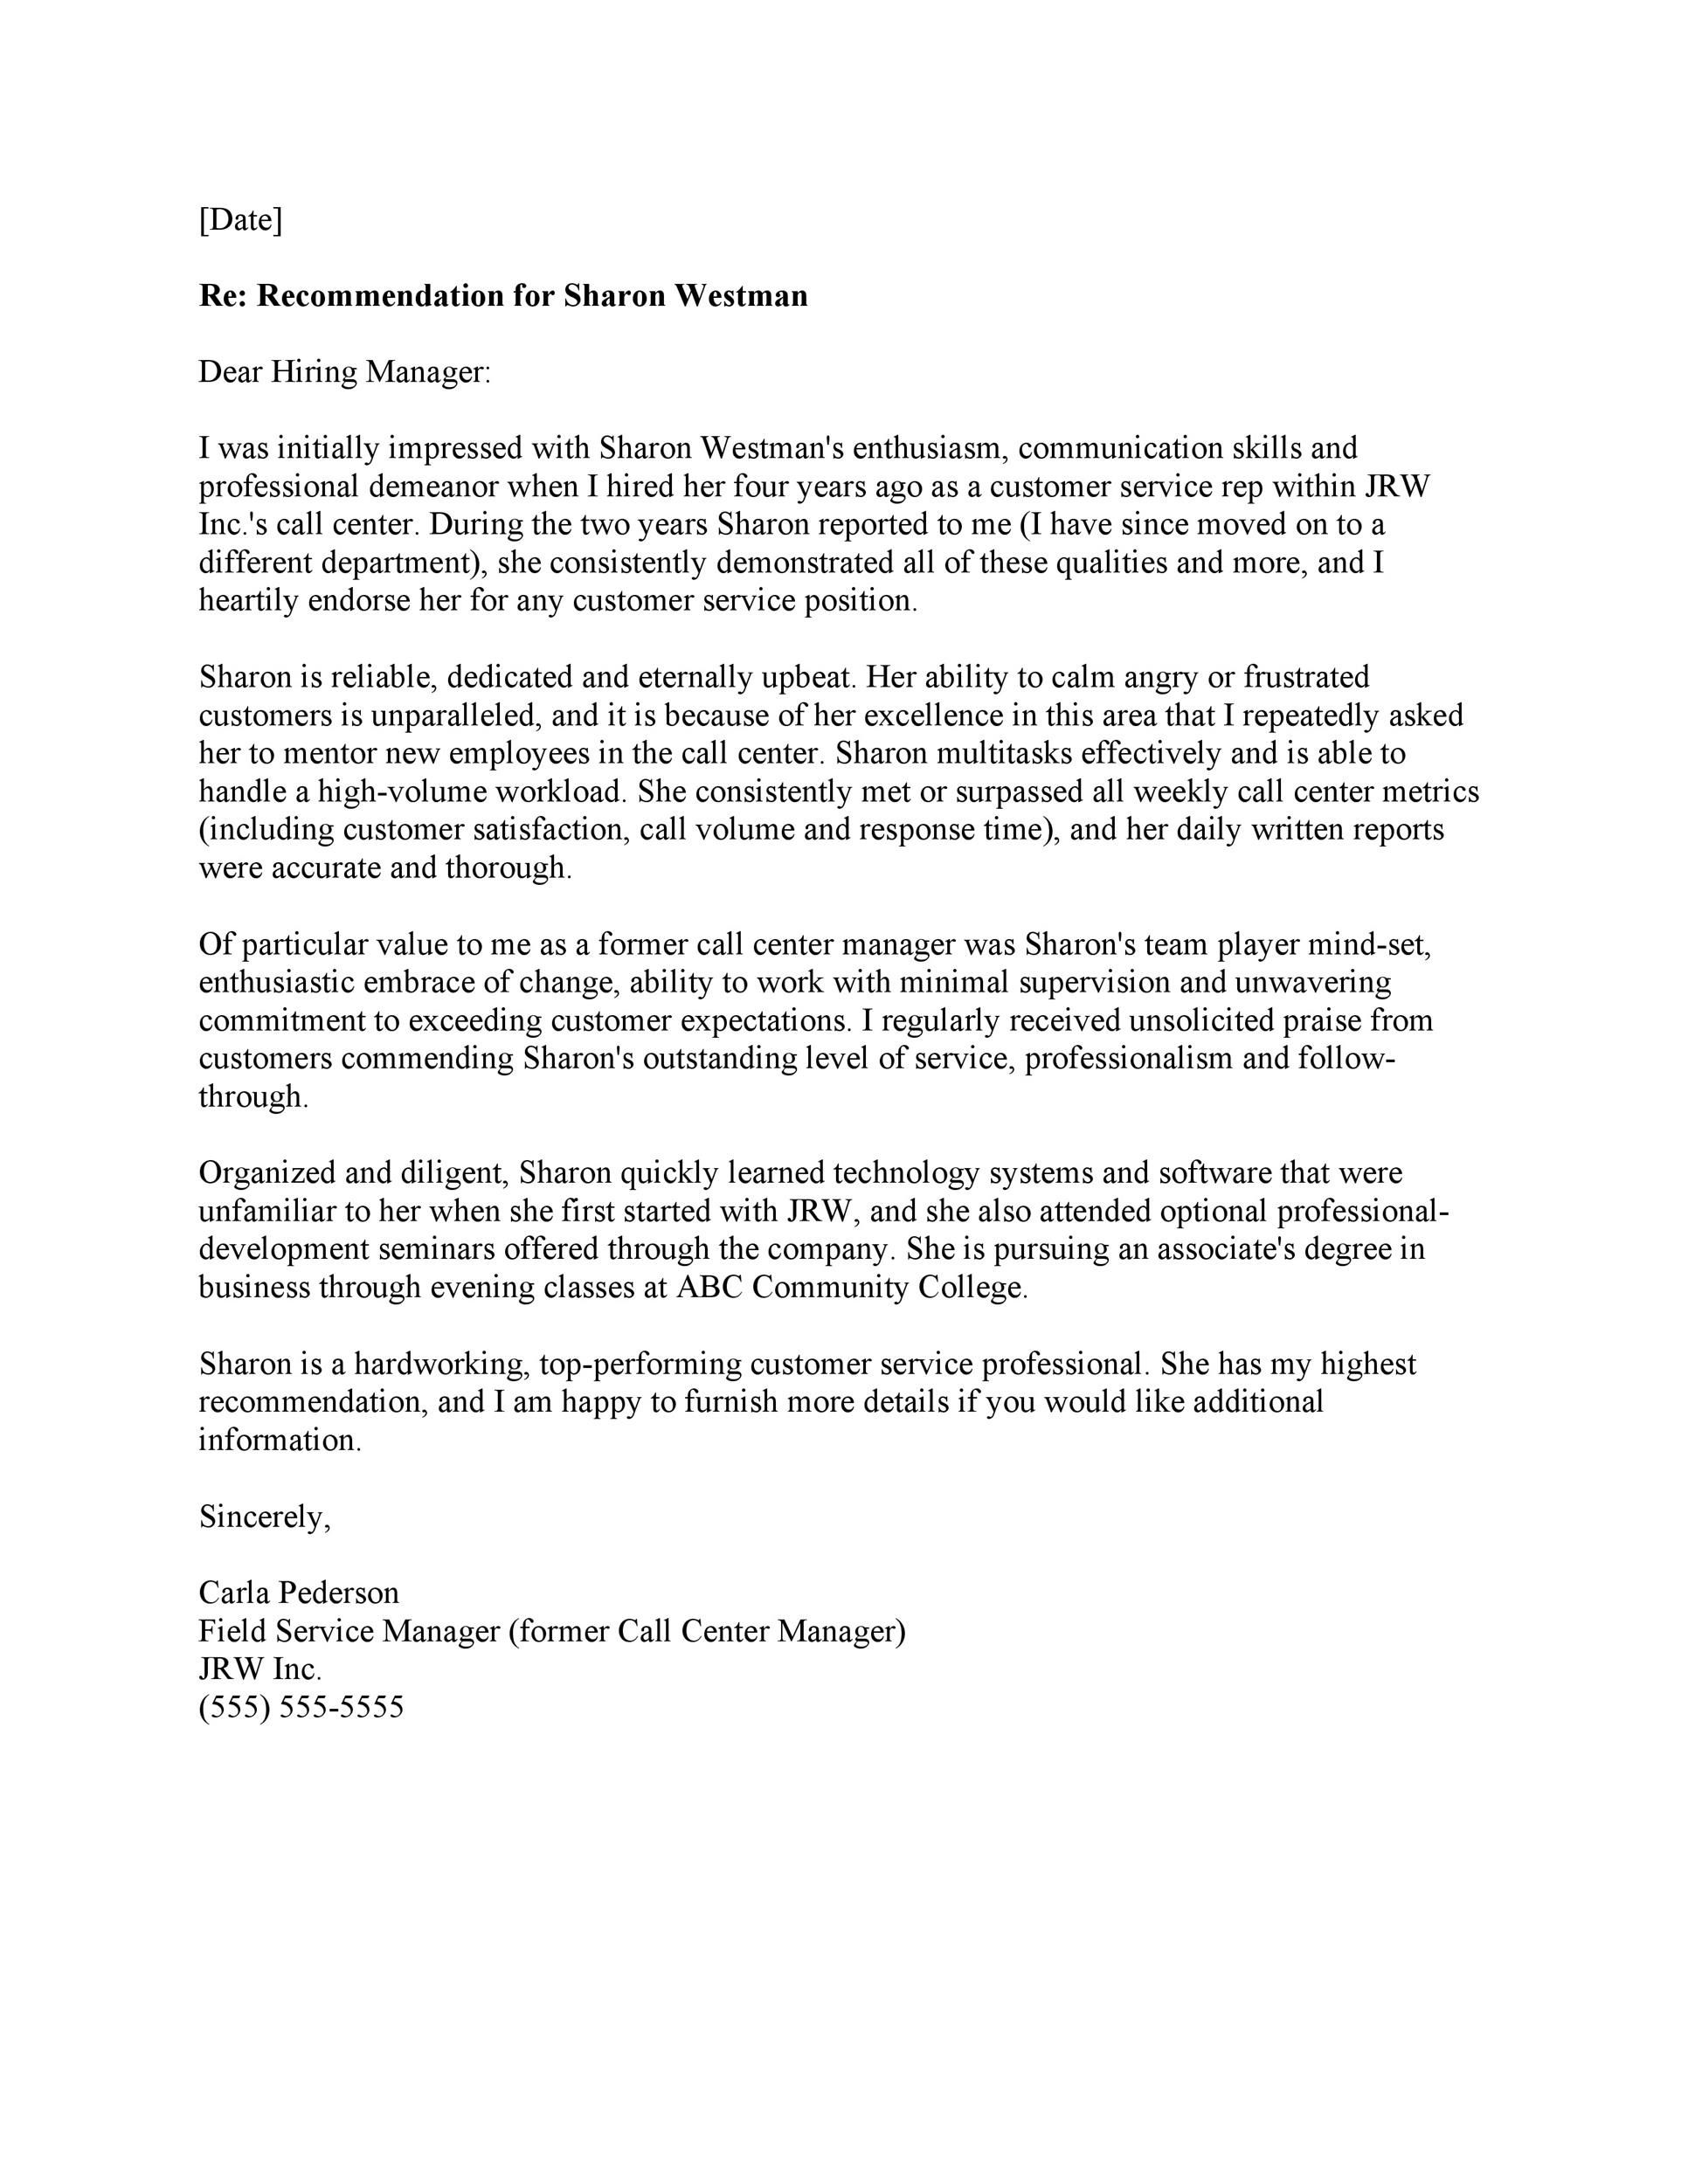 008 Awful Letter Of Recommendation Template High Resolution  Word Sample For College Admission Student DocFull